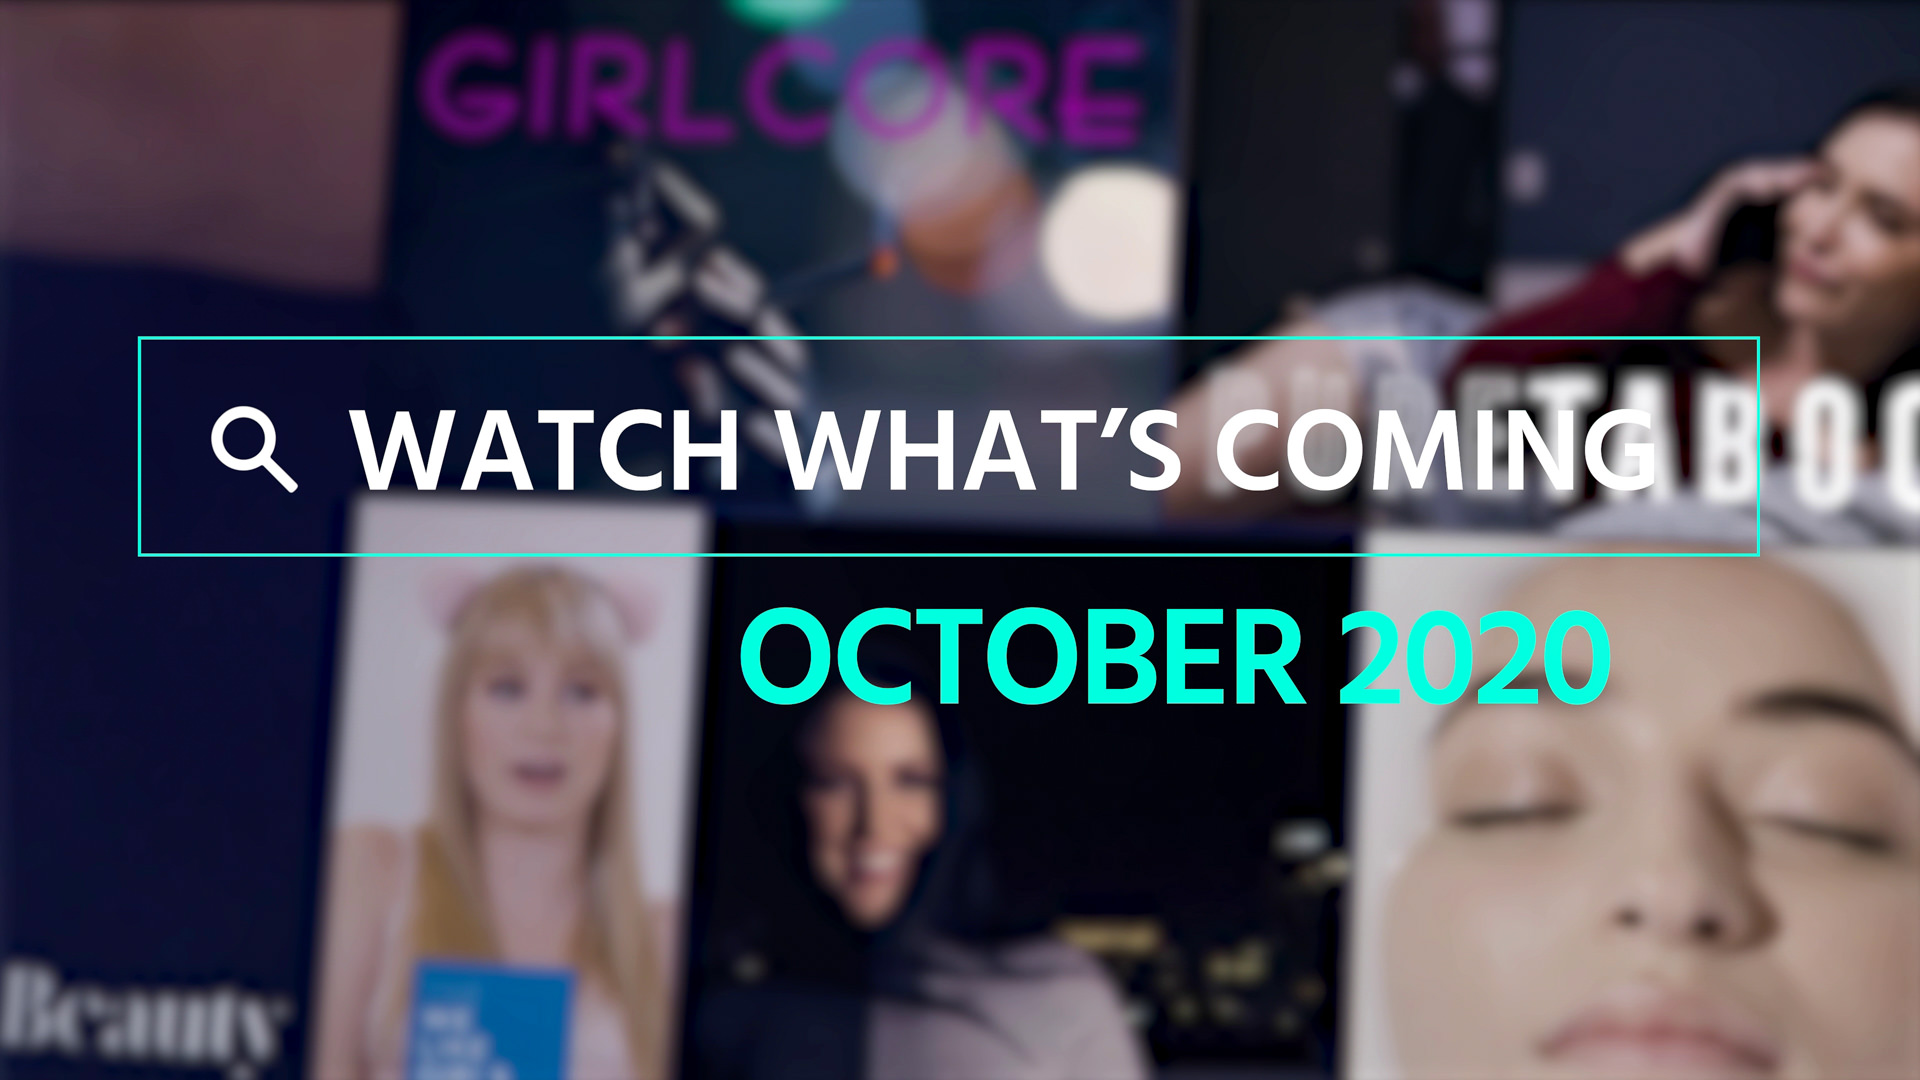 Watch What's Coming | October 2020 1